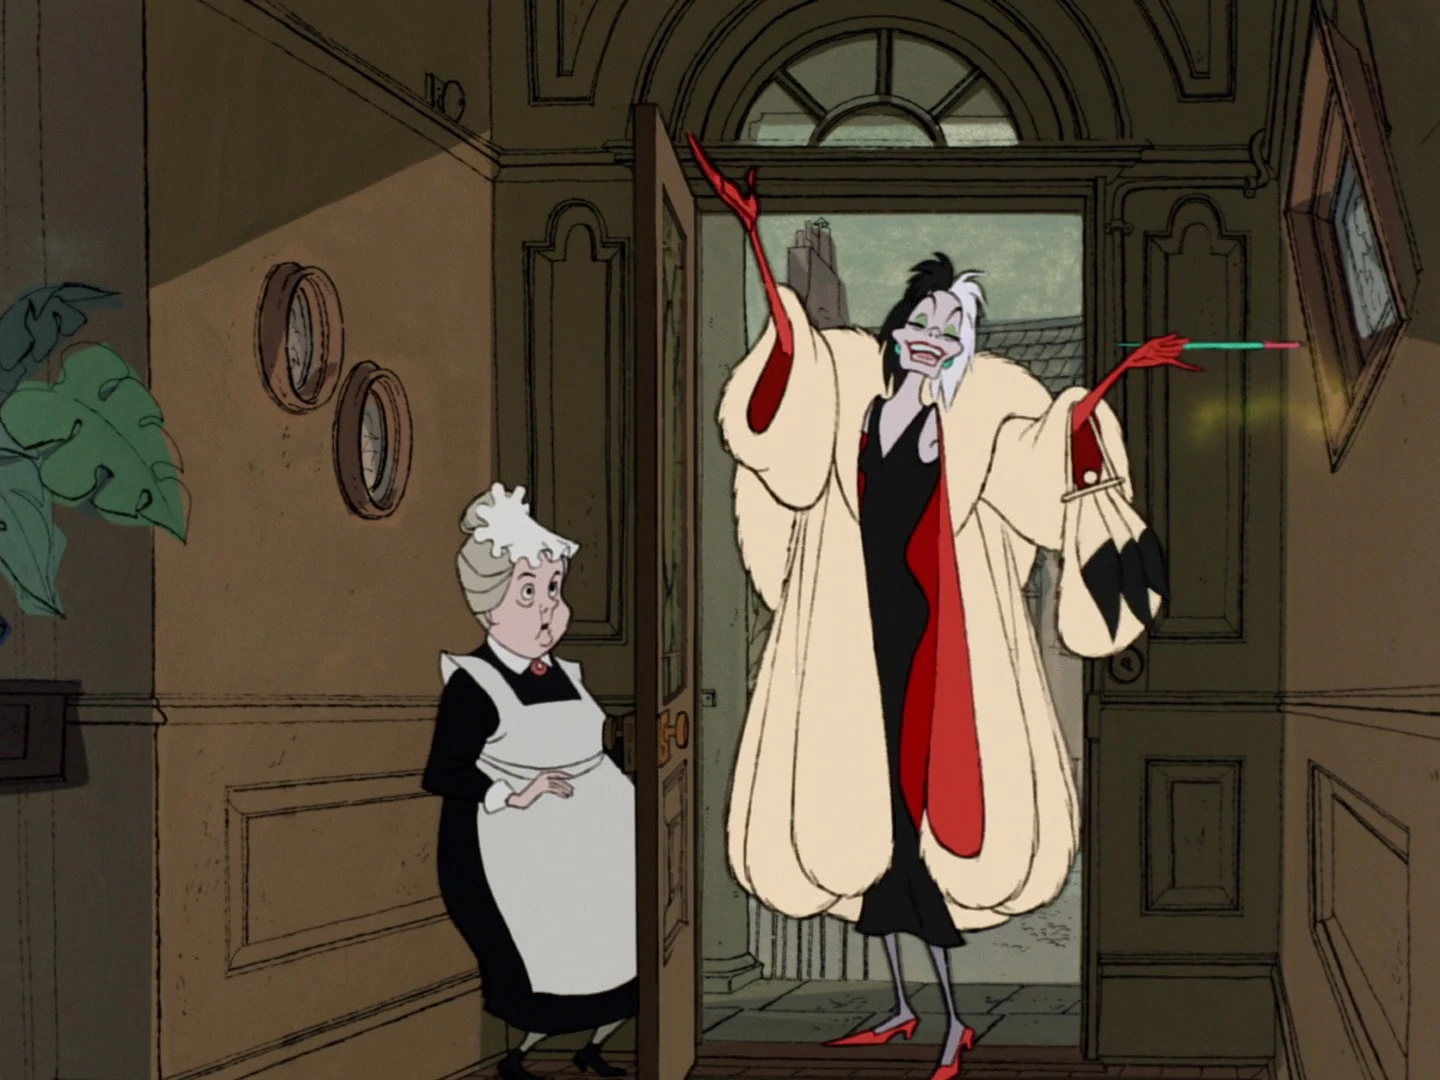 Disney Cruella mystique villain villainy mystery of evil ruined by too much information, backstory, exposition as seen with Darth Vader